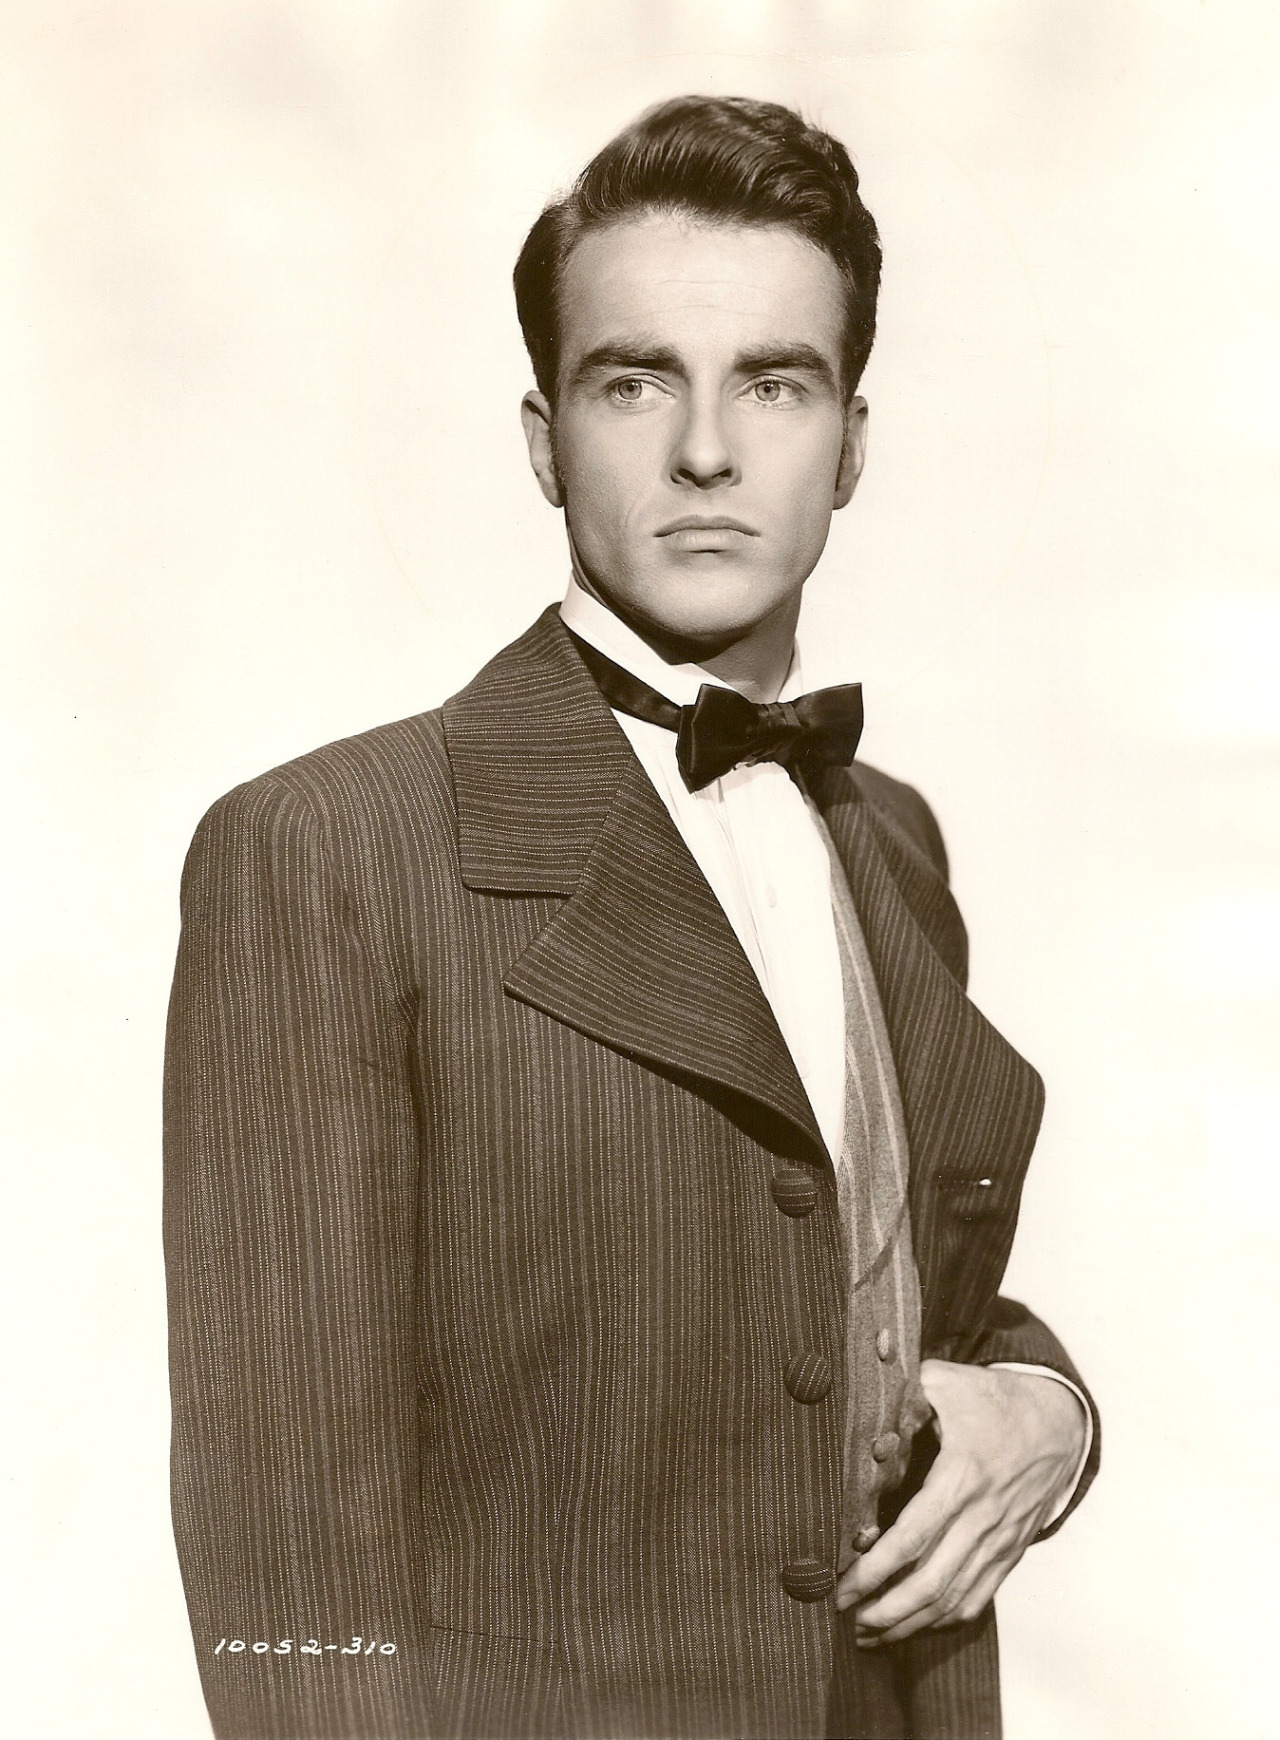 Montgomery Clift in the Heiress, 1949